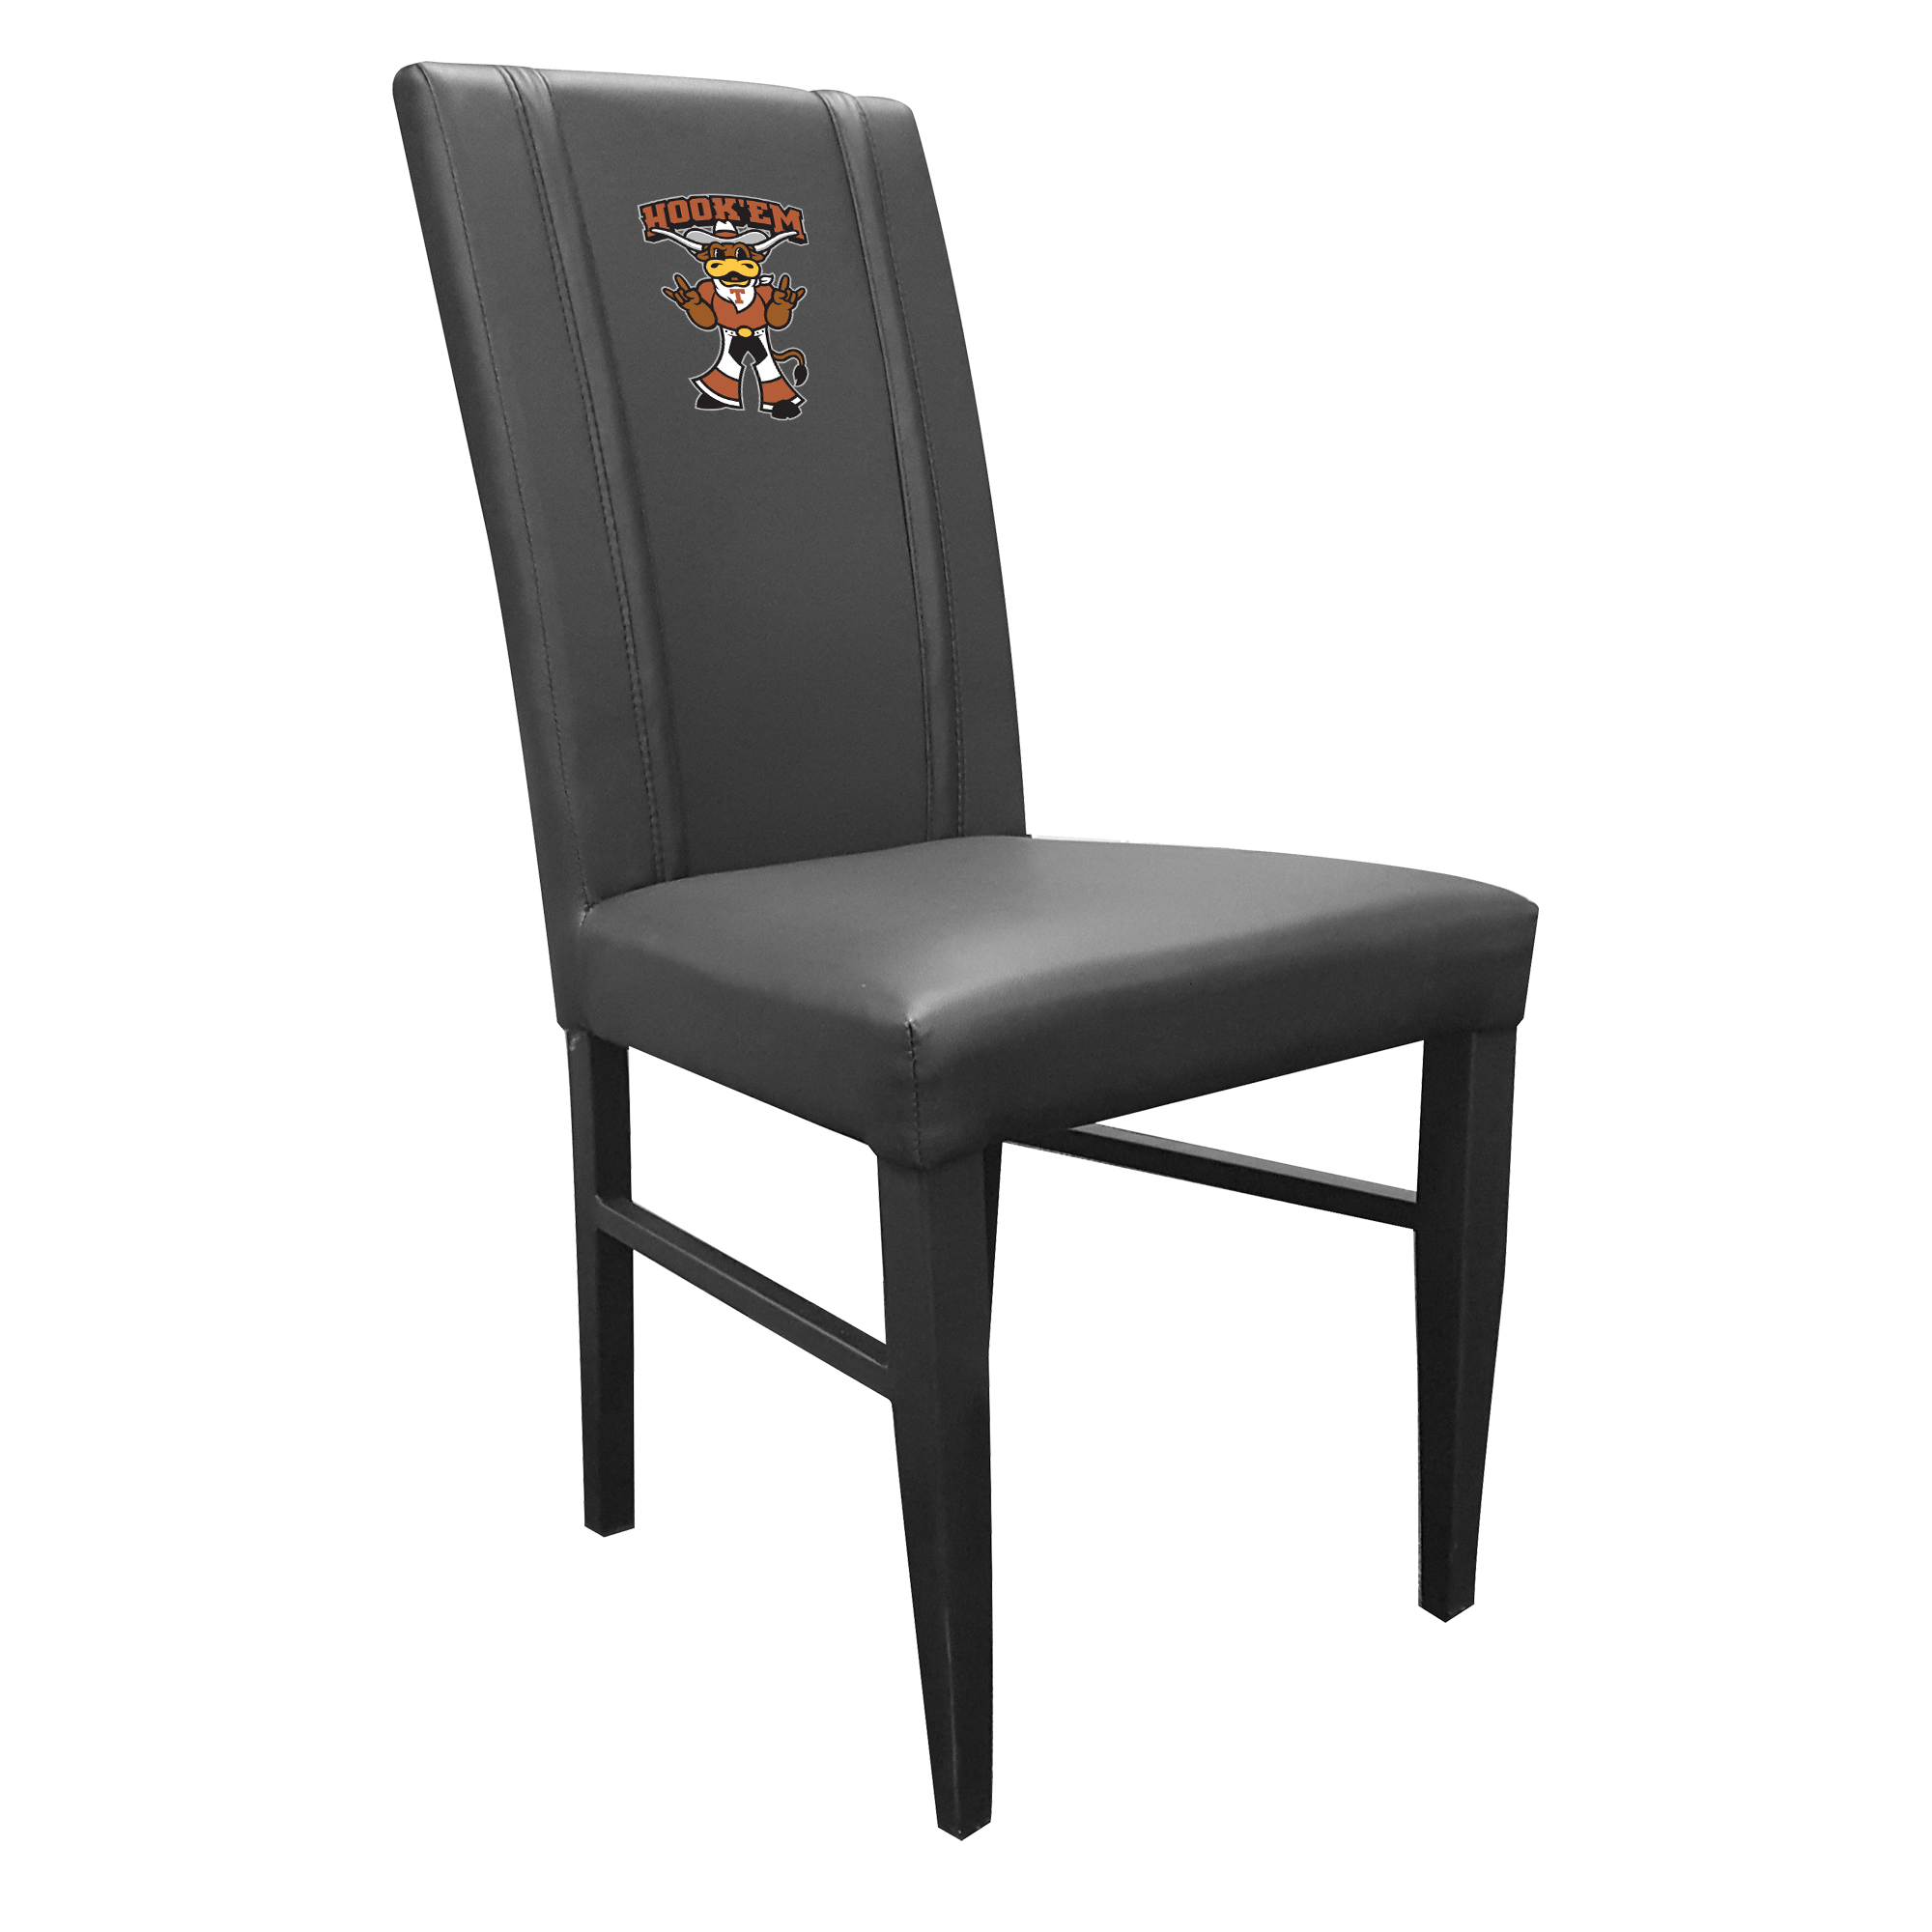 Side Chair 2000 with Texas Longhorns Alternate